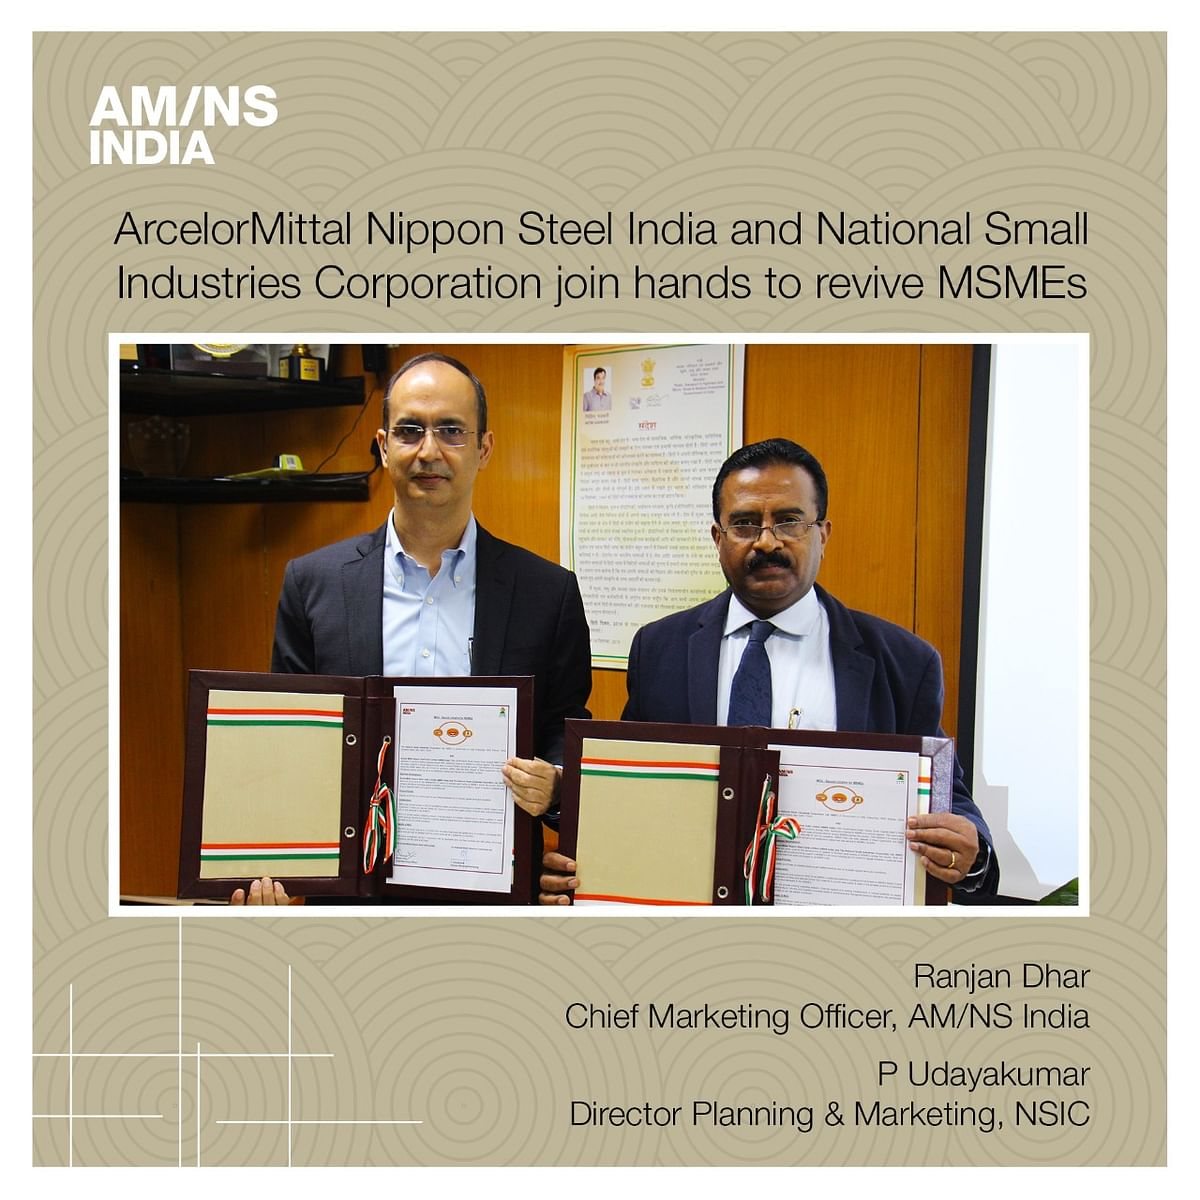 AMNS India & NSIC Ink MoU to Supply Steel Products to MSMEs